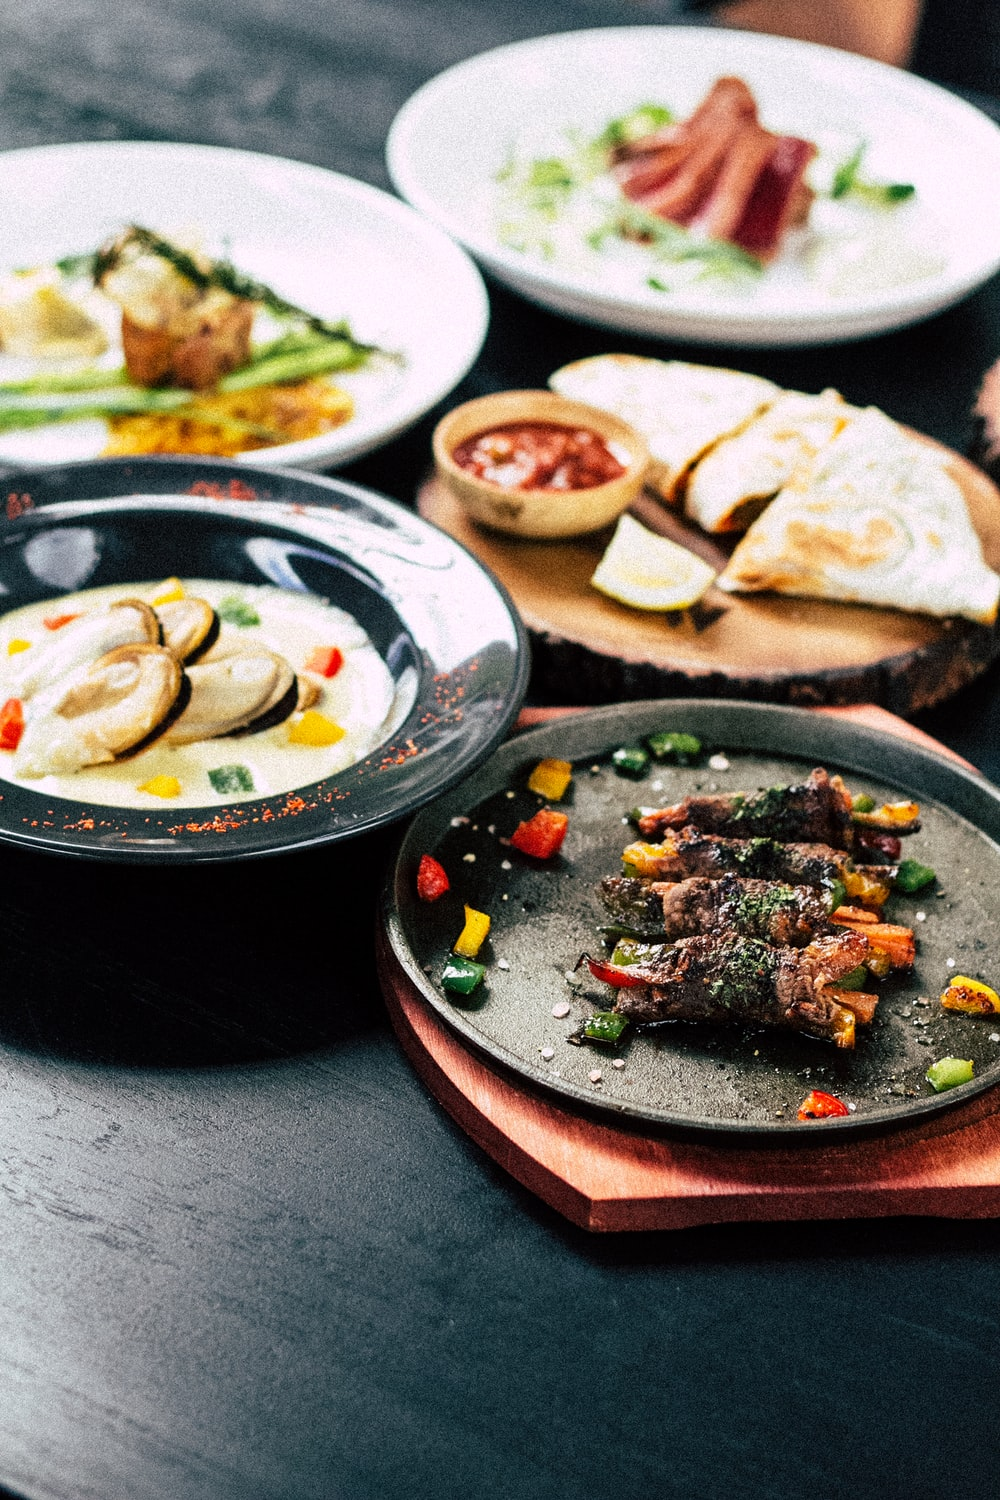 cooked food on top of black and white ceramic plates